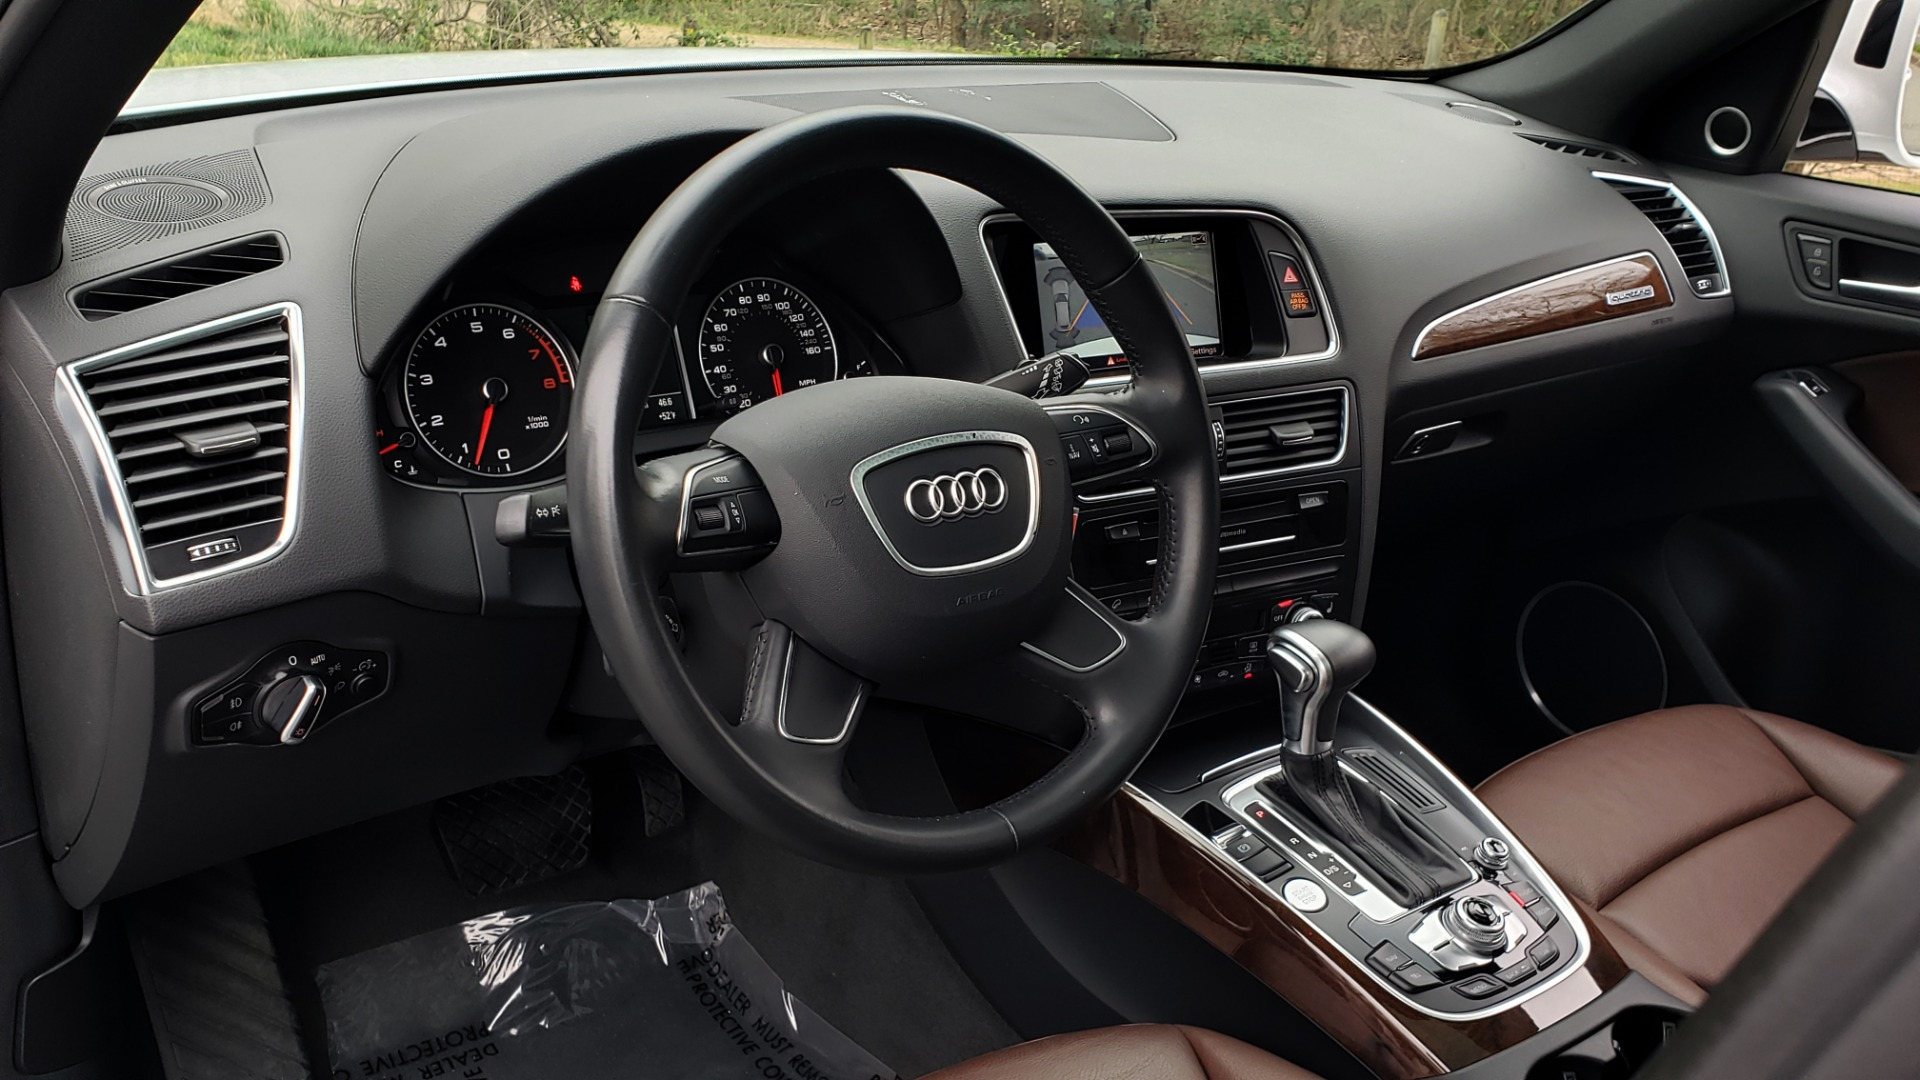 Used 2017 Audi Q5 PREMIUM PLUS / TECH / NAV / PANO-ROOF / B&O SND / REARVIEW for sale Sold at Formula Imports in Charlotte NC 28227 41